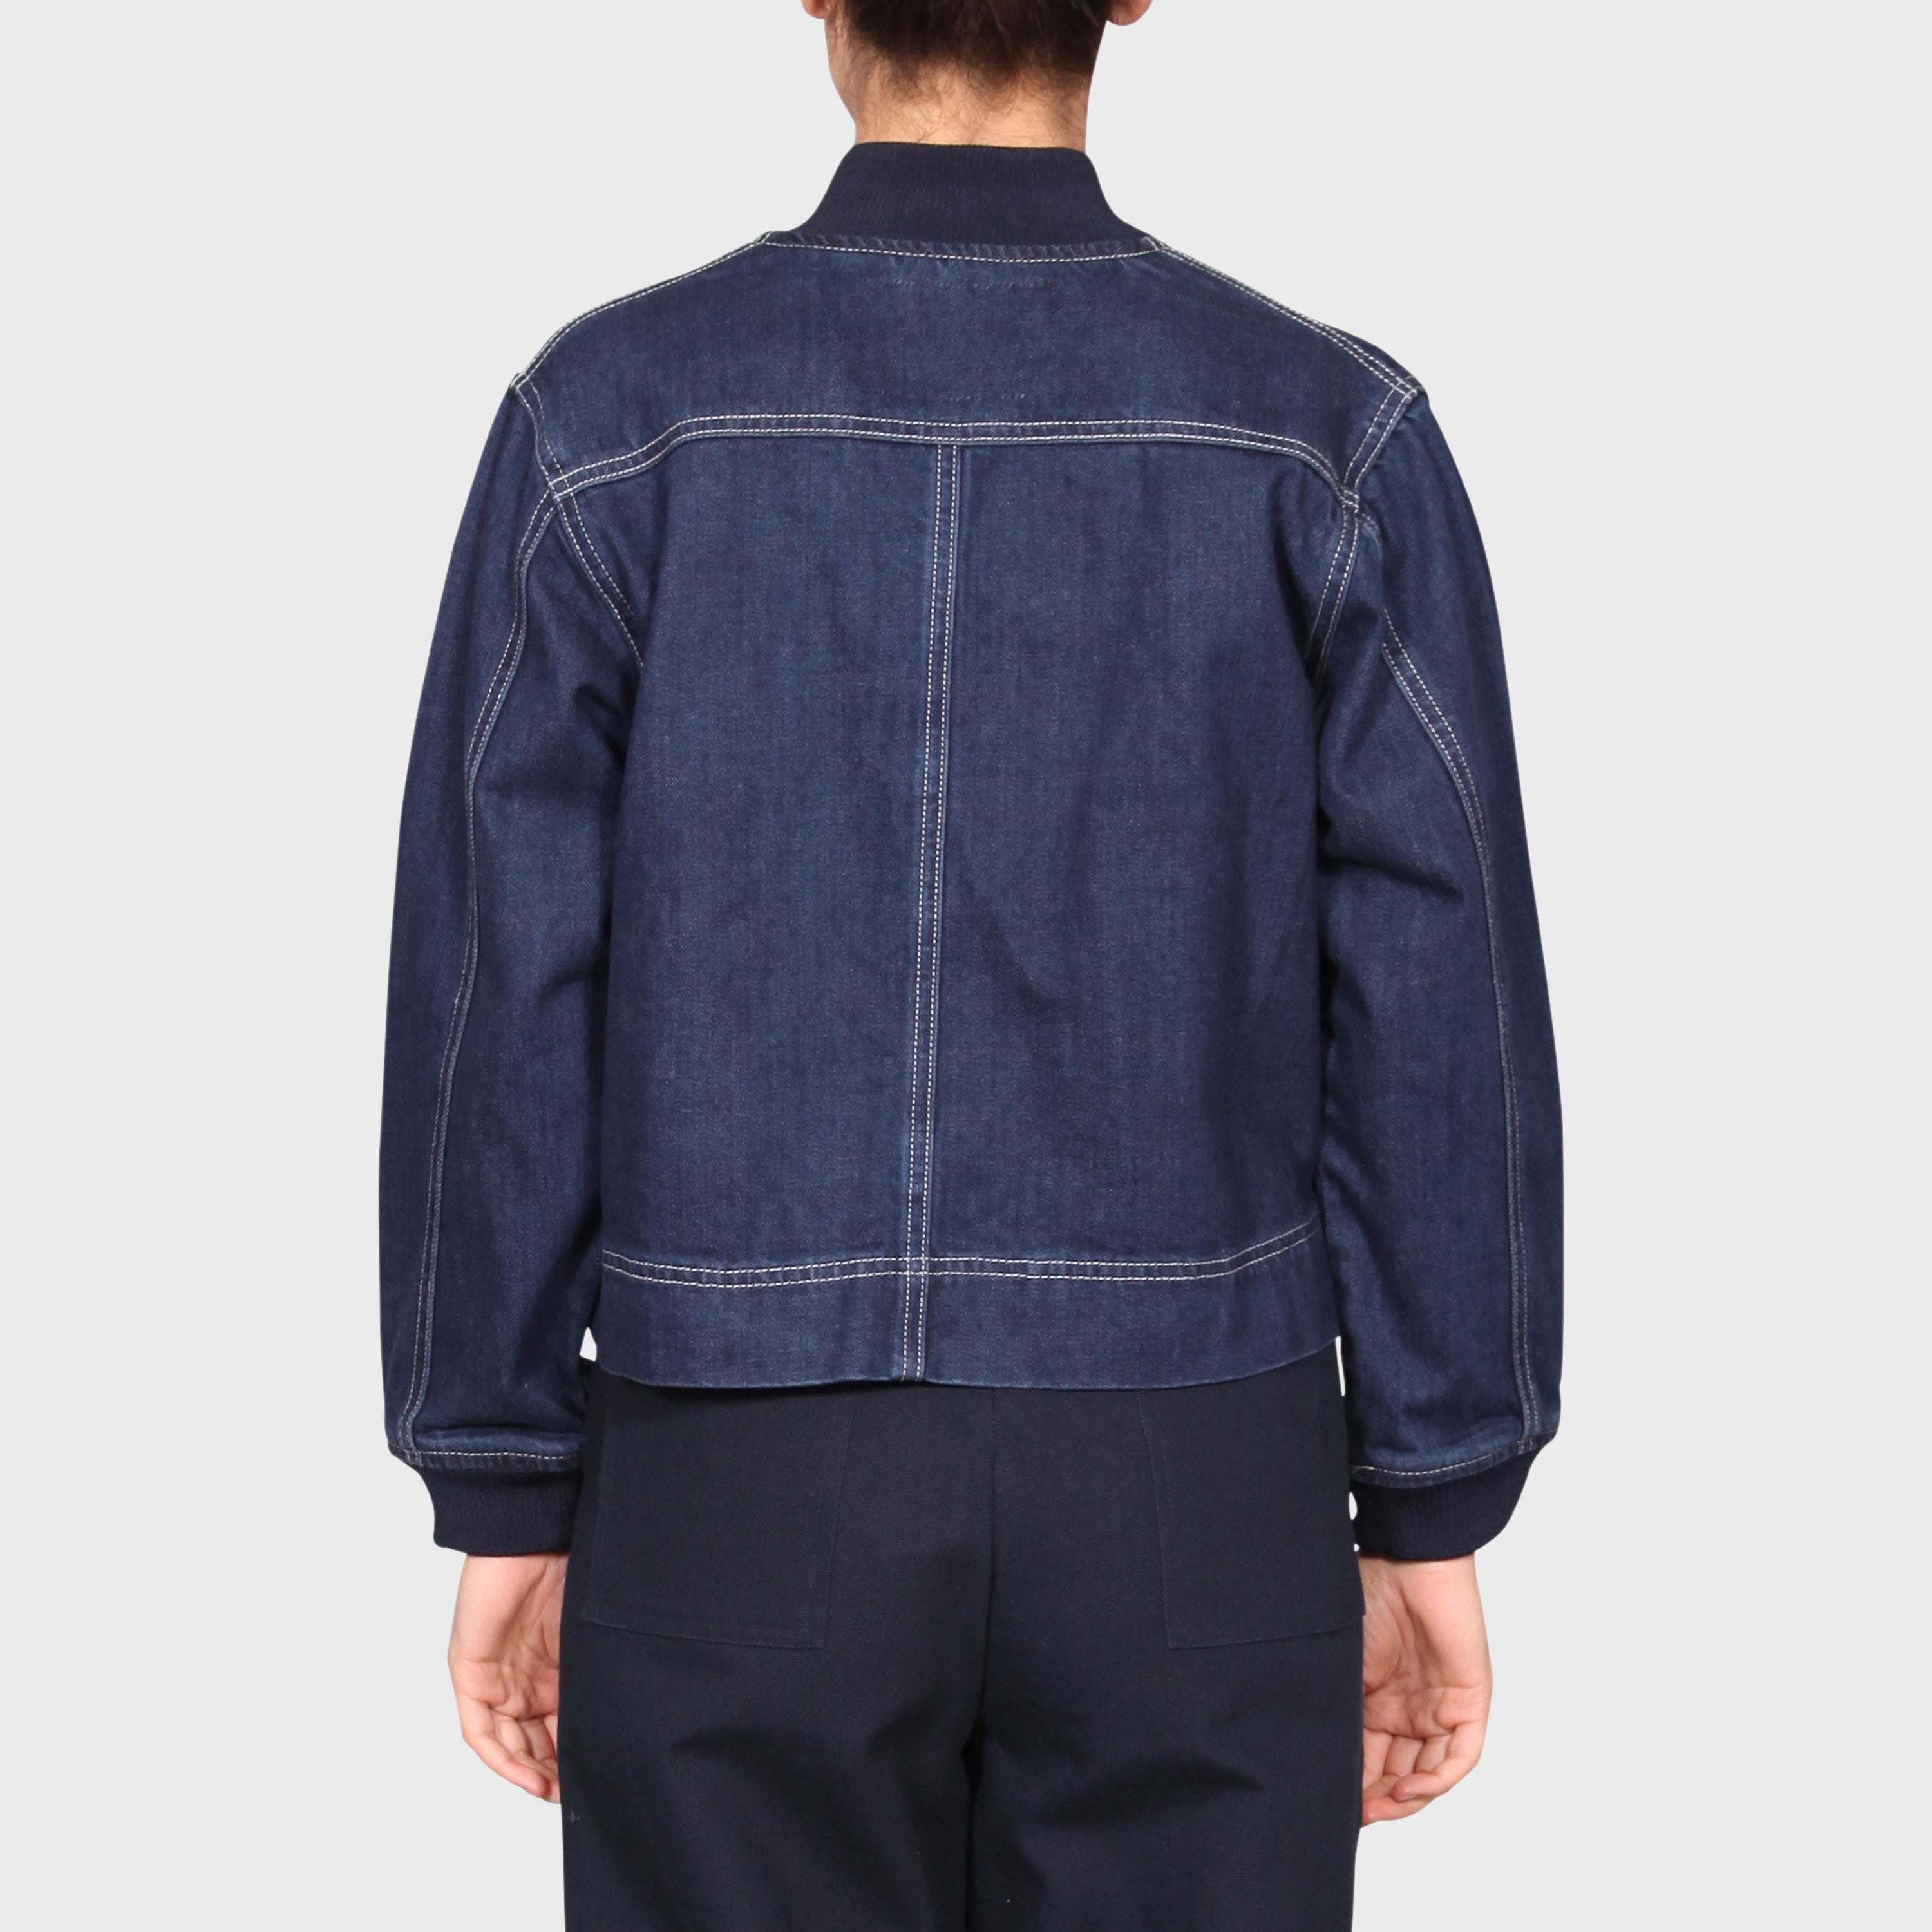 NADA JACKET / ROYAL NAVY